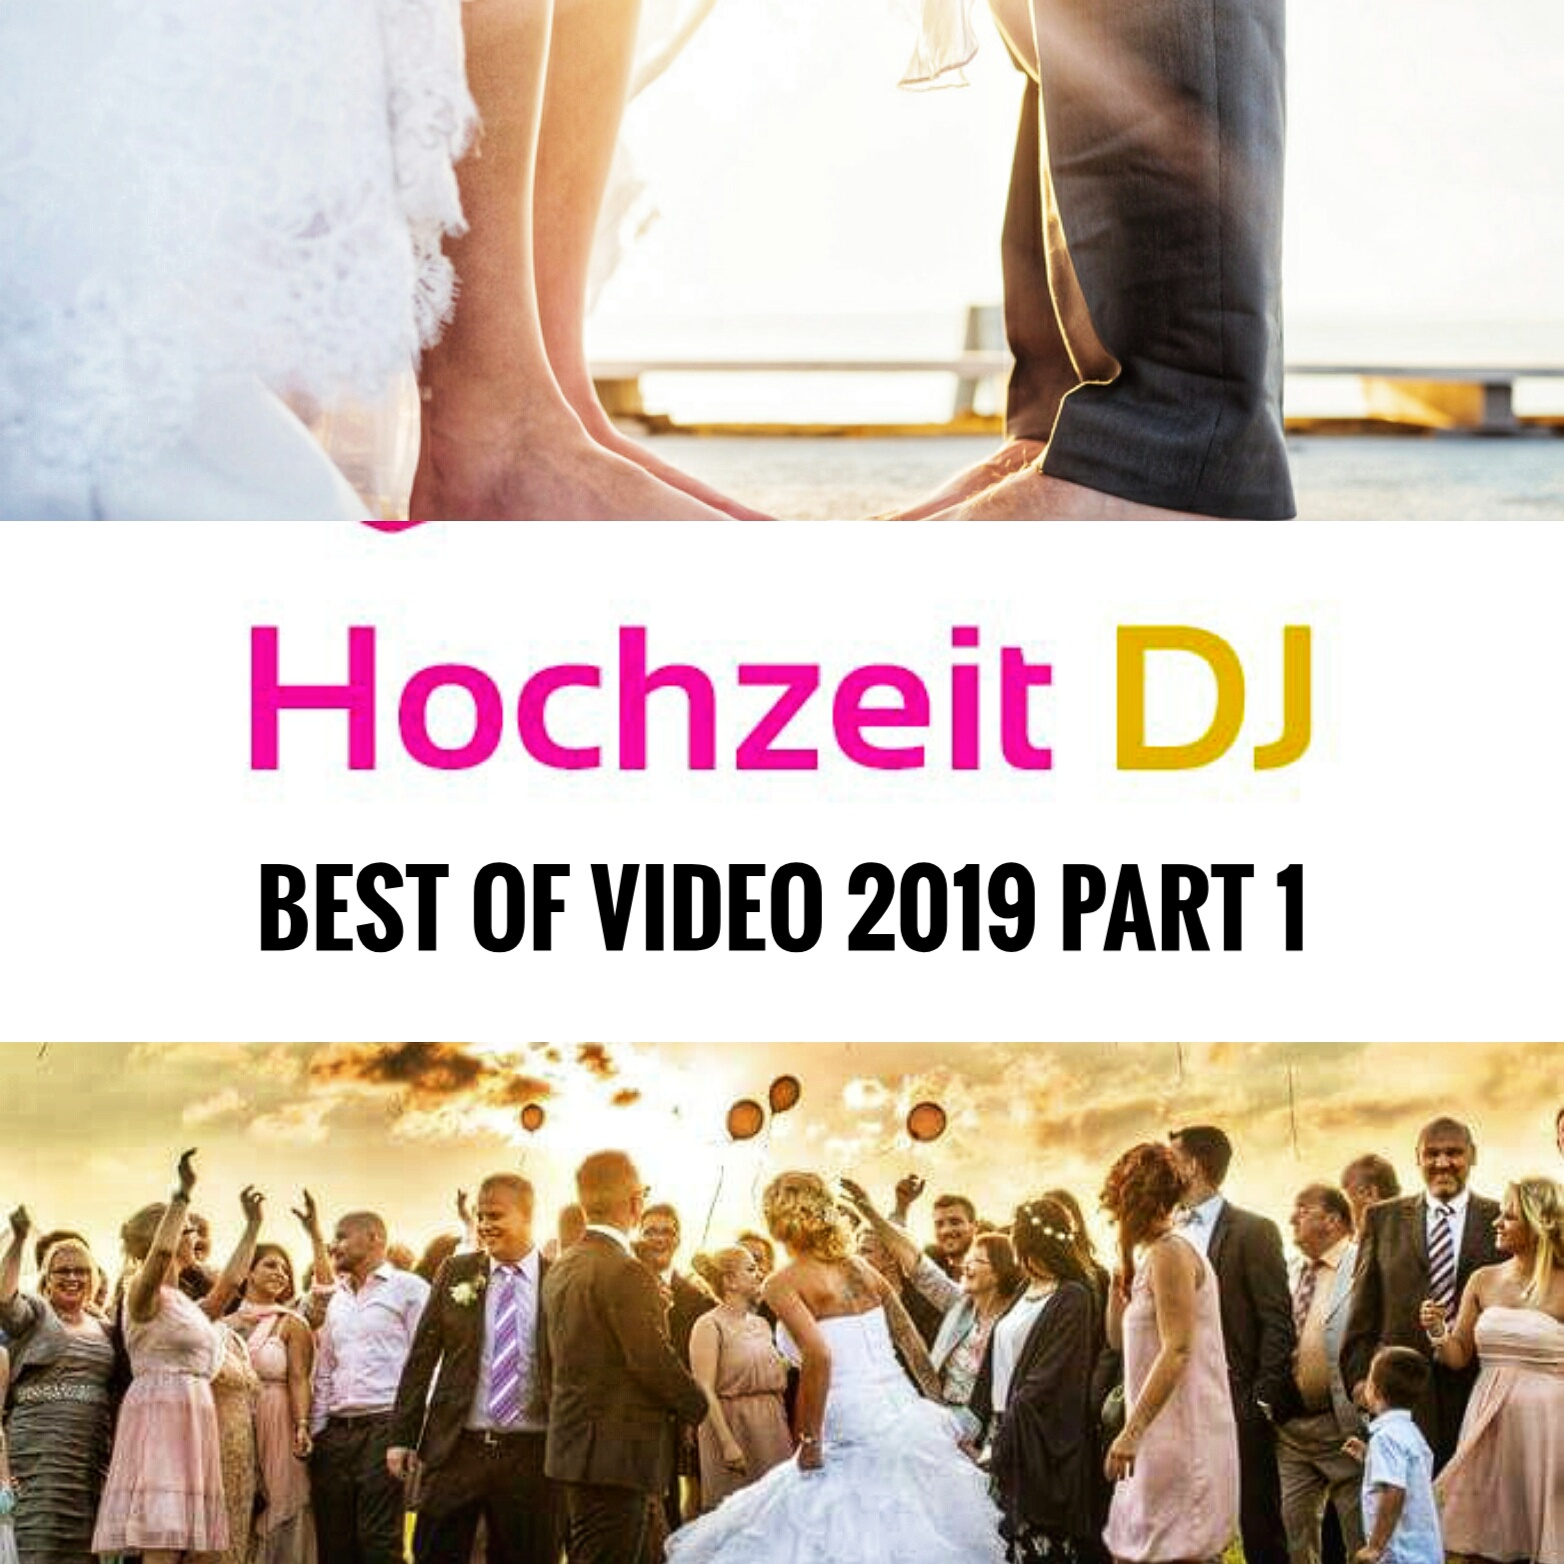 Hochzeit DJ best of wedding part 1